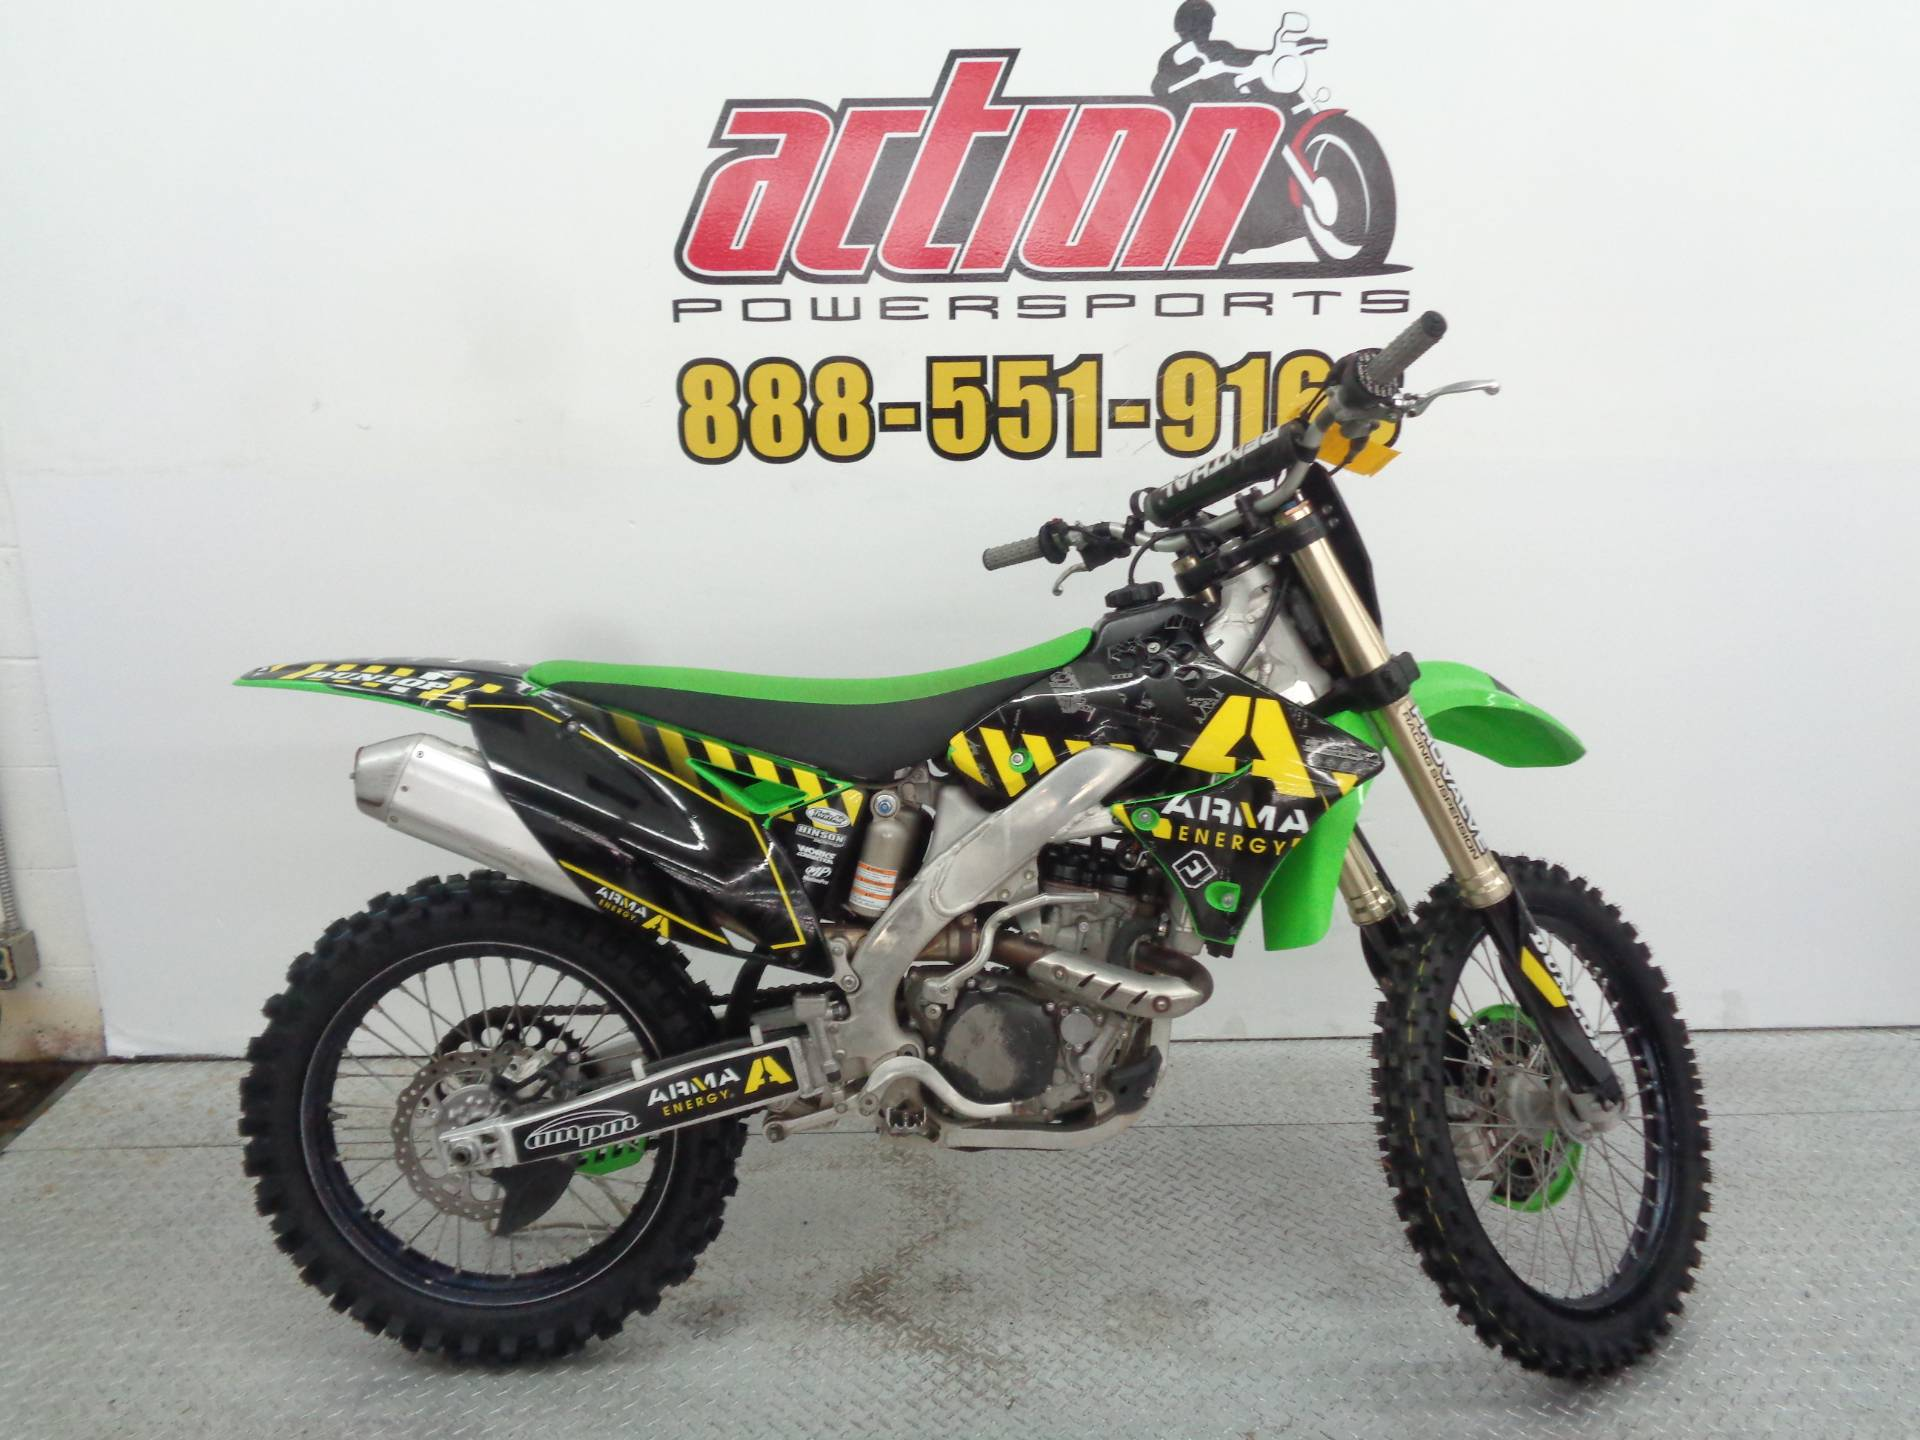 2011 Kawasaki KX™450F in Tulsa, Oklahoma - Photo 1